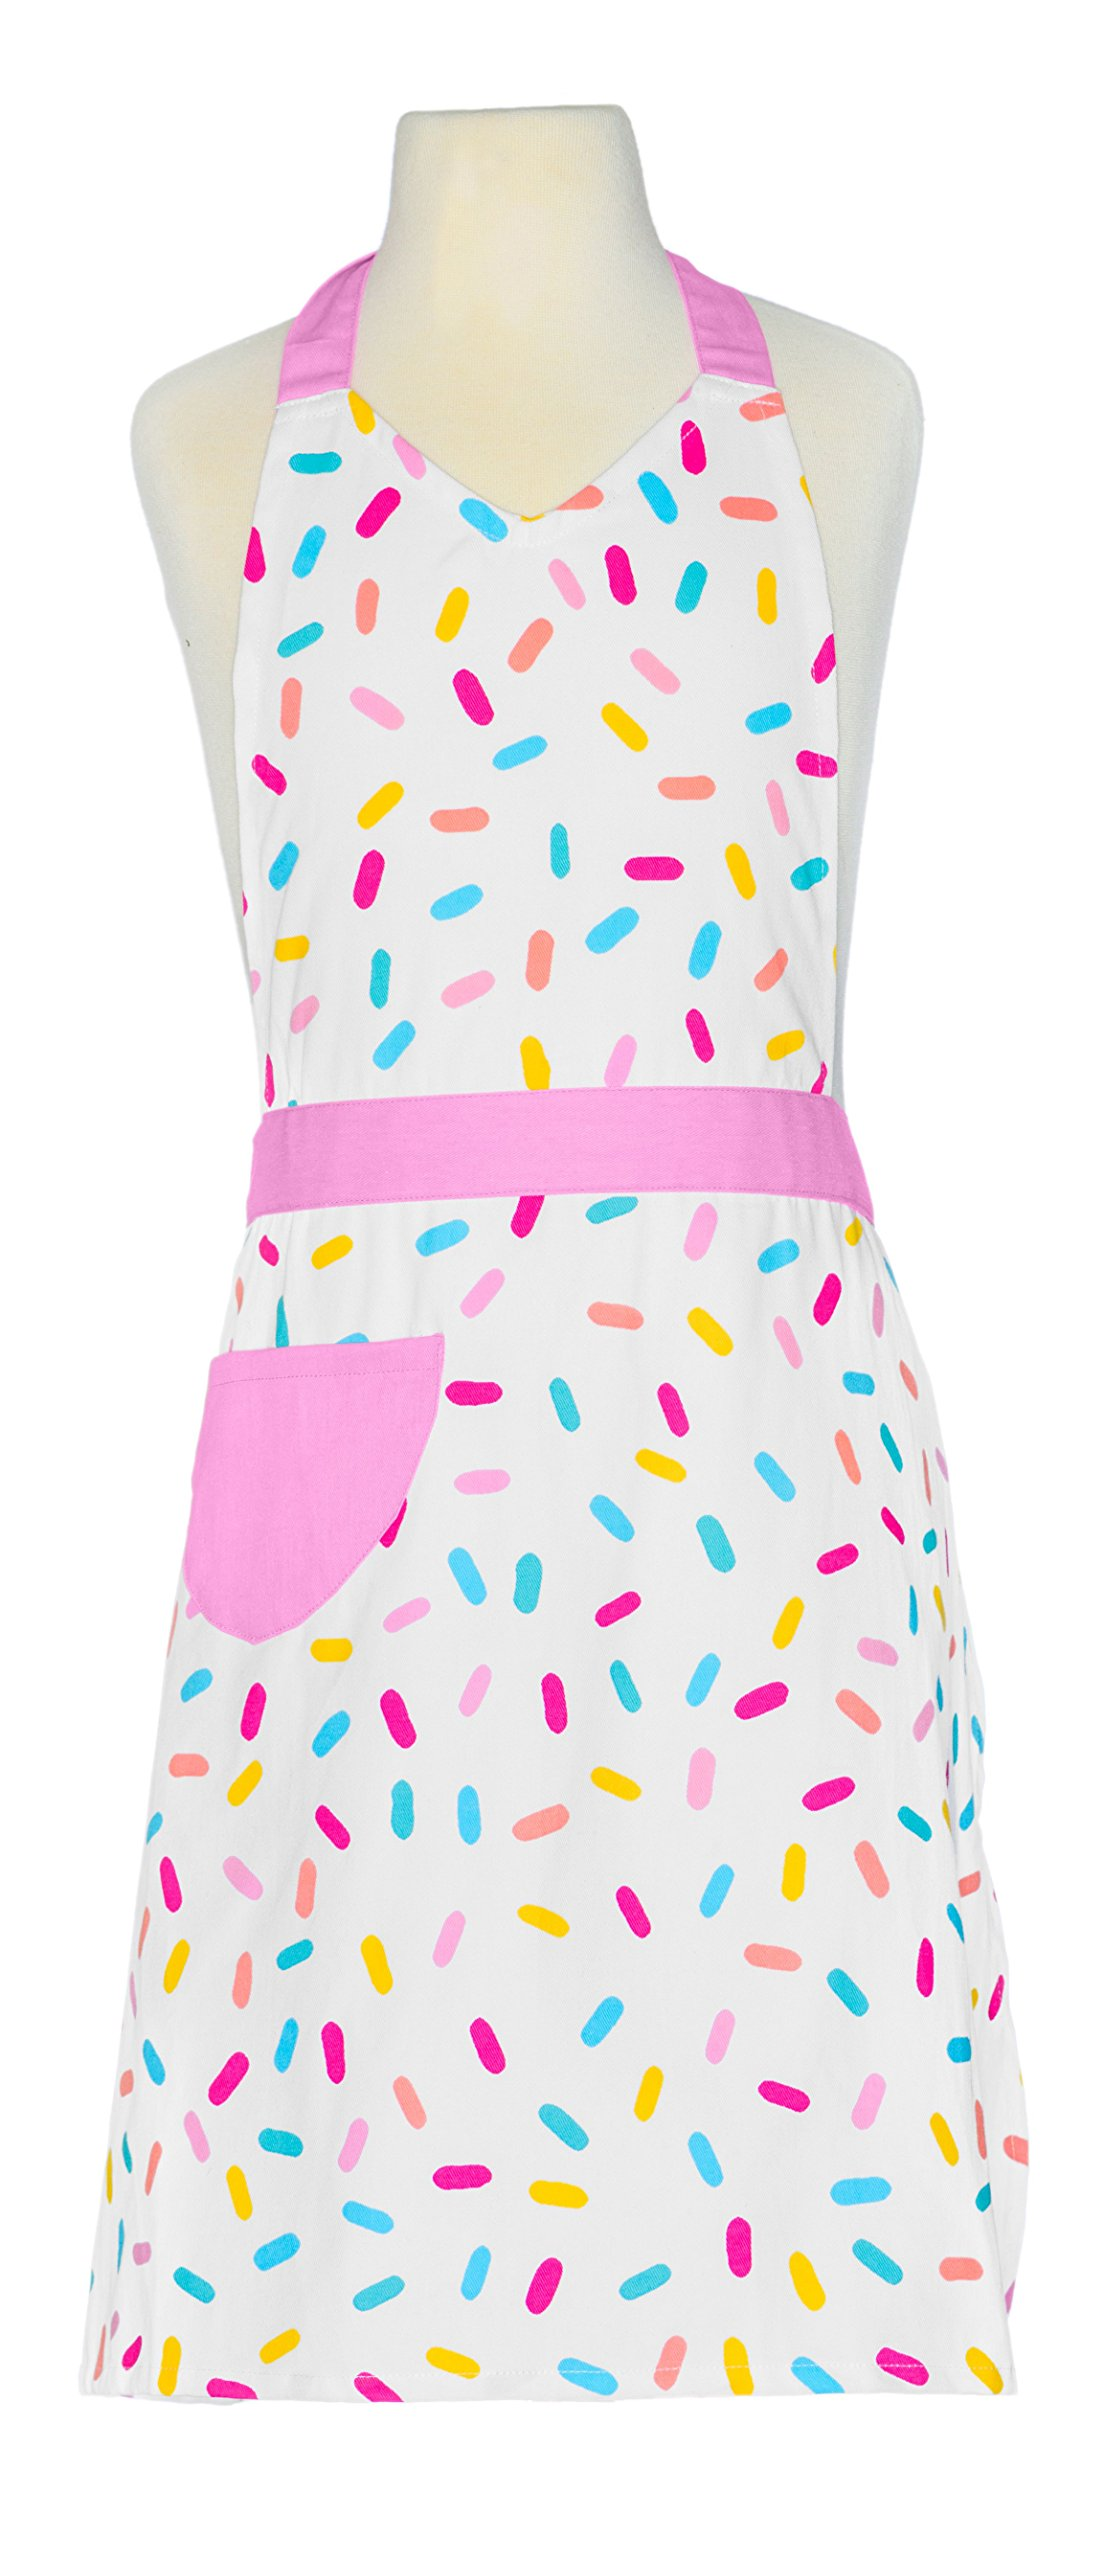 Handstand Kitchen Mother and Daughter Sprinkles 100% Cotton Apron Gift Set by Handstand Kitchen (Image #2)